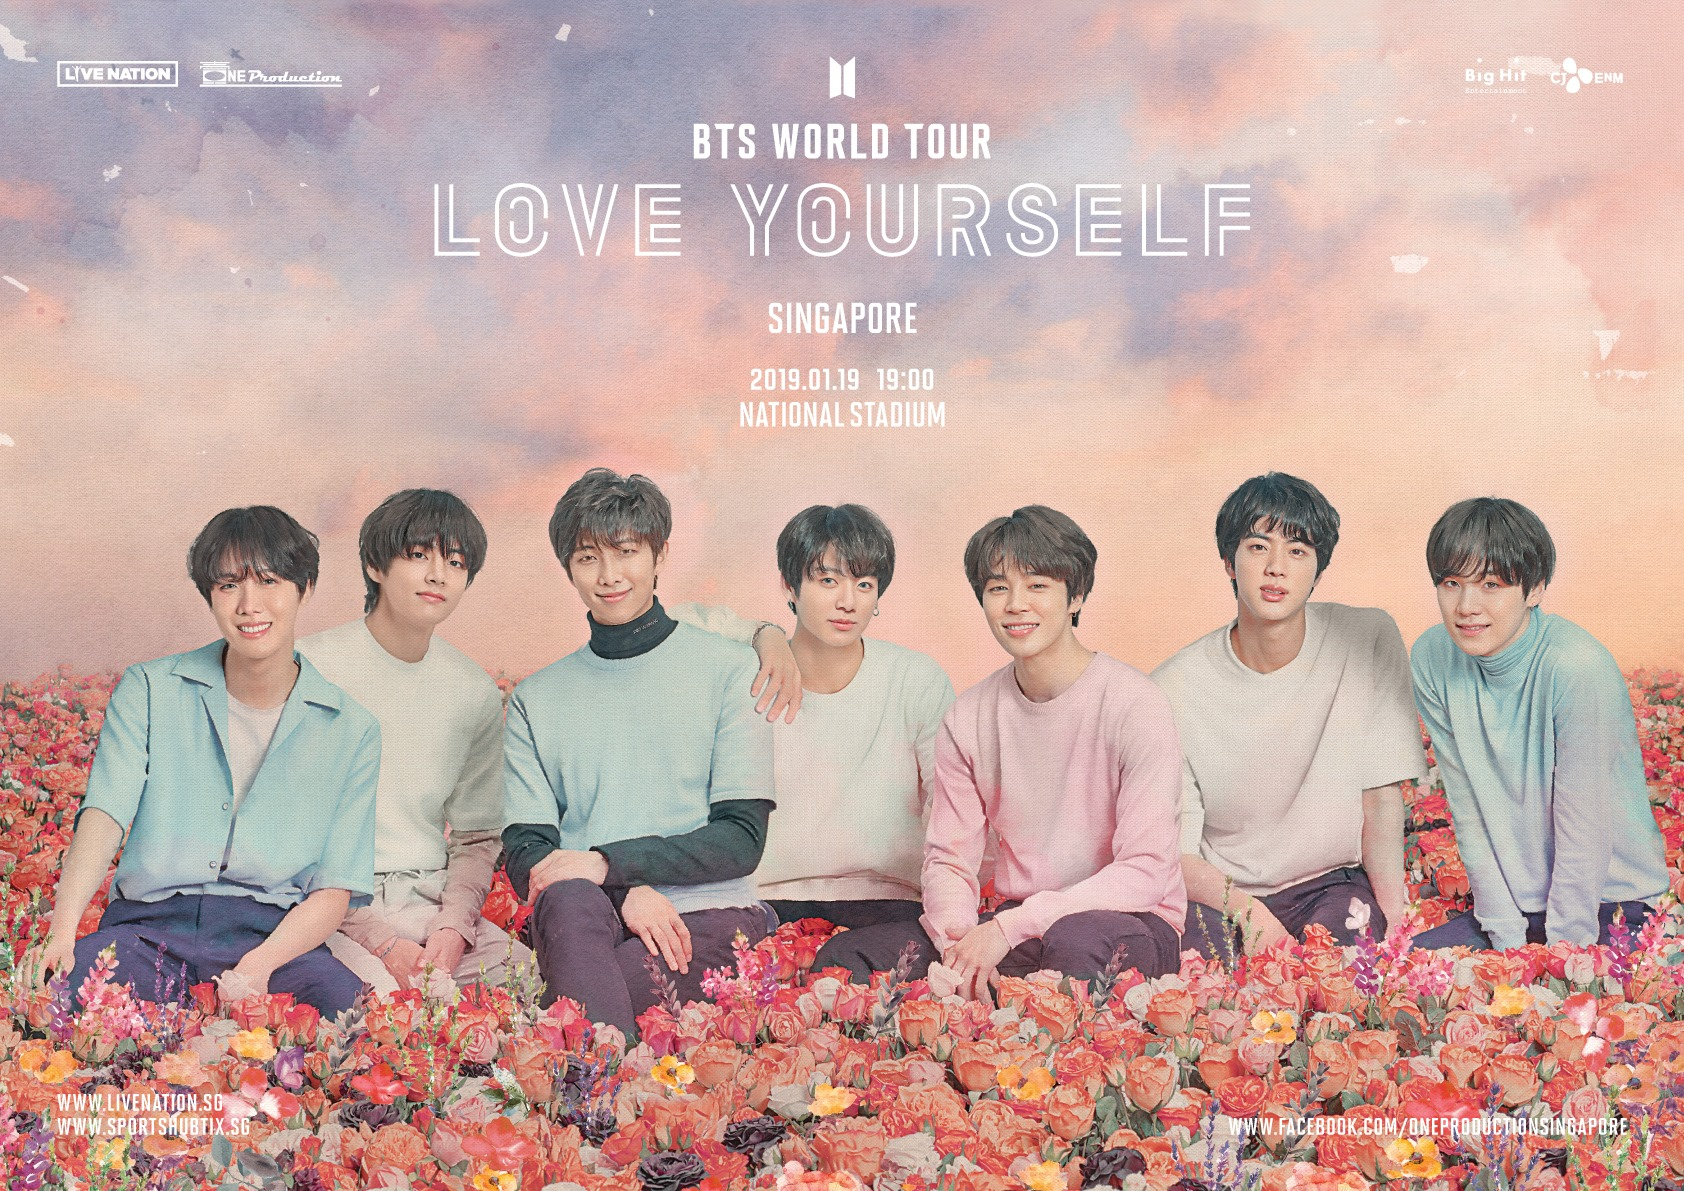 BTS to take Singapore by storm for their LOVE YOURSELF WORLD TOUR at National Stadium!